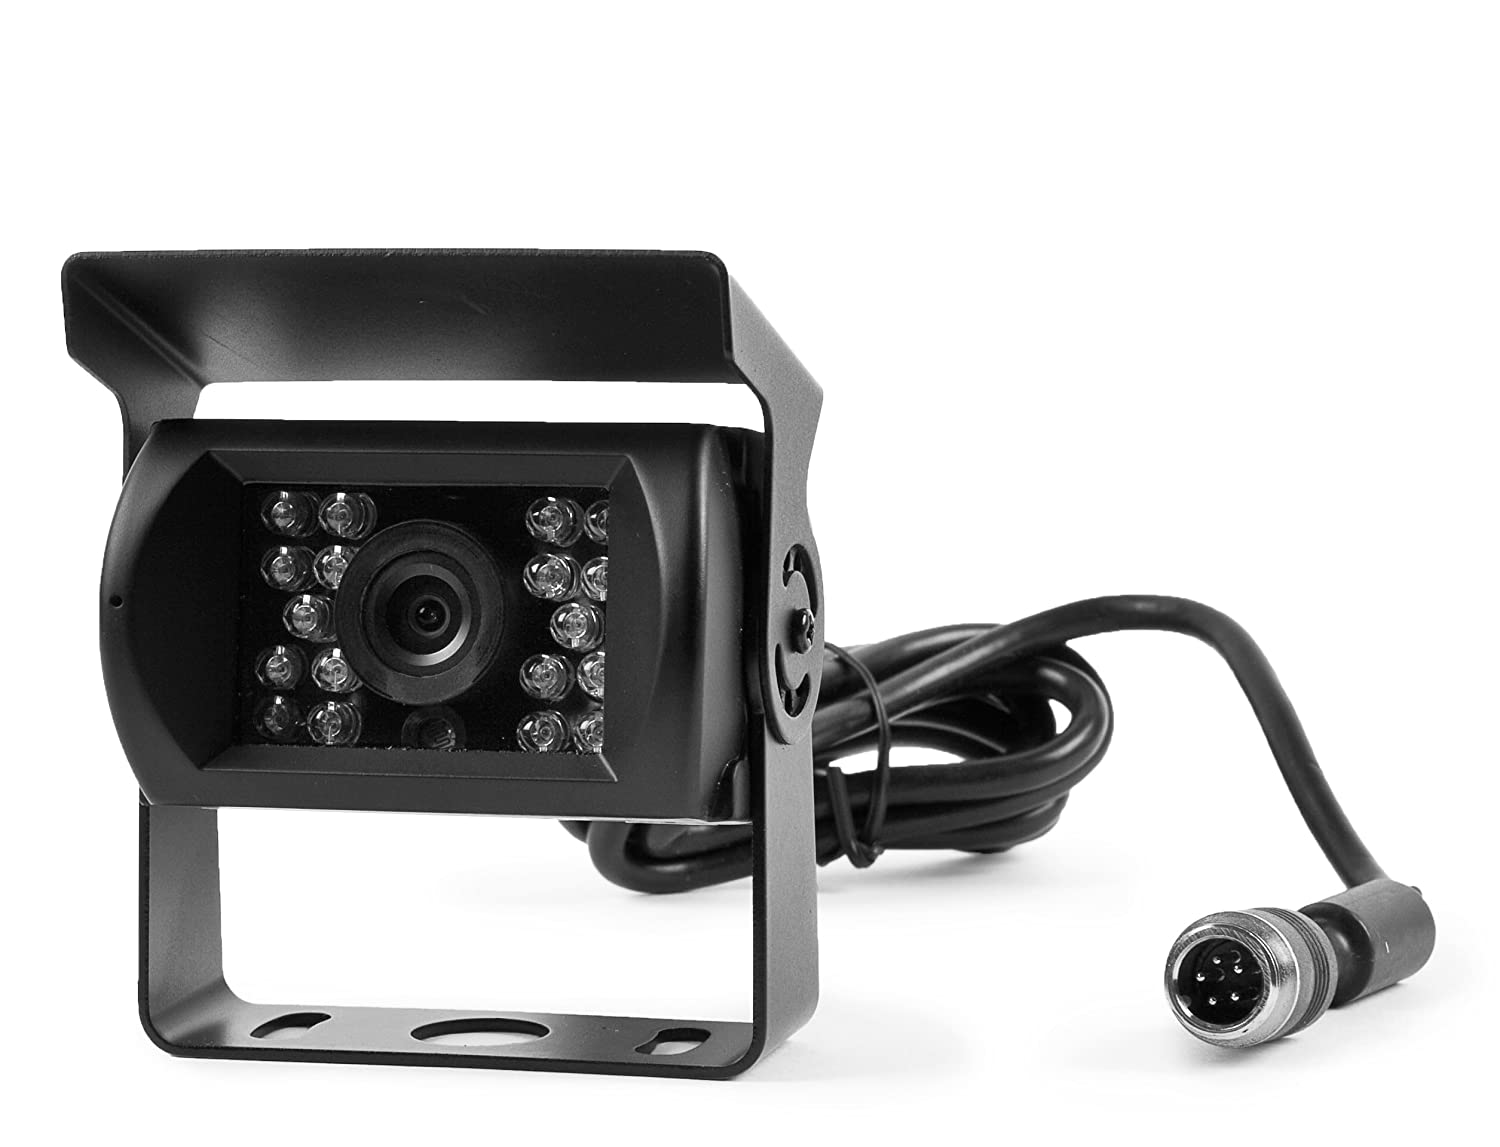 Amazon.com: Rear View 130° CCD Back Up Camera with 18 Built in Infra ...